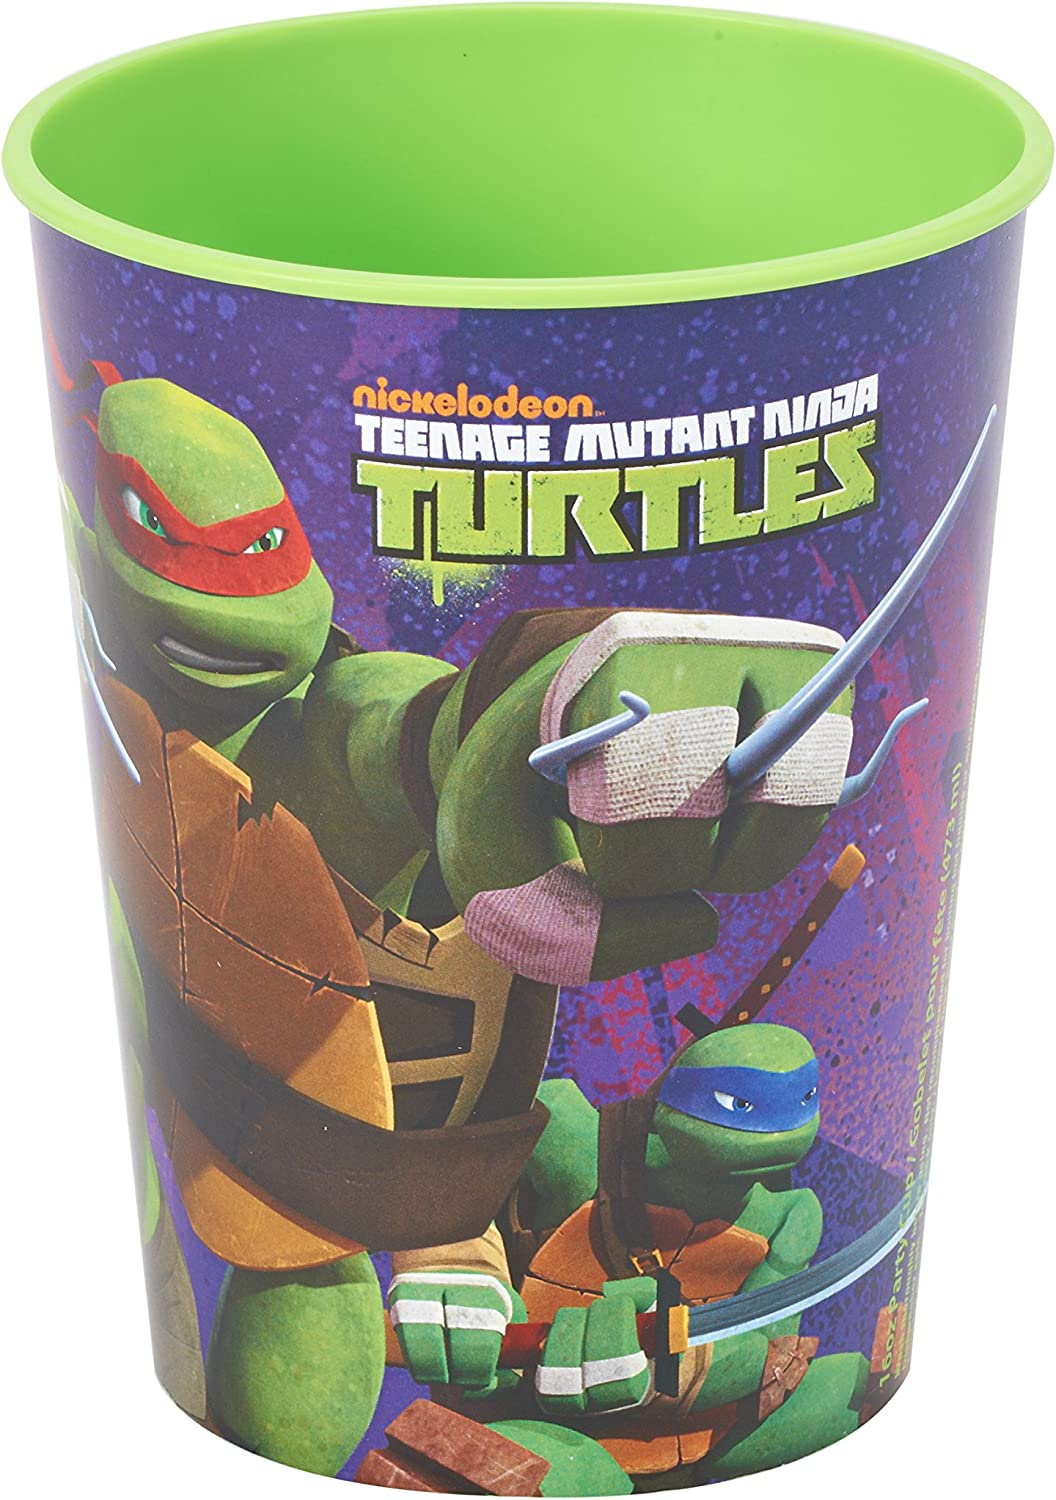 American Greetings Teenage Mutant Ninja Turtles (TMNT) Party Supplies, Plastic Stadium Party Cup (1-Count)